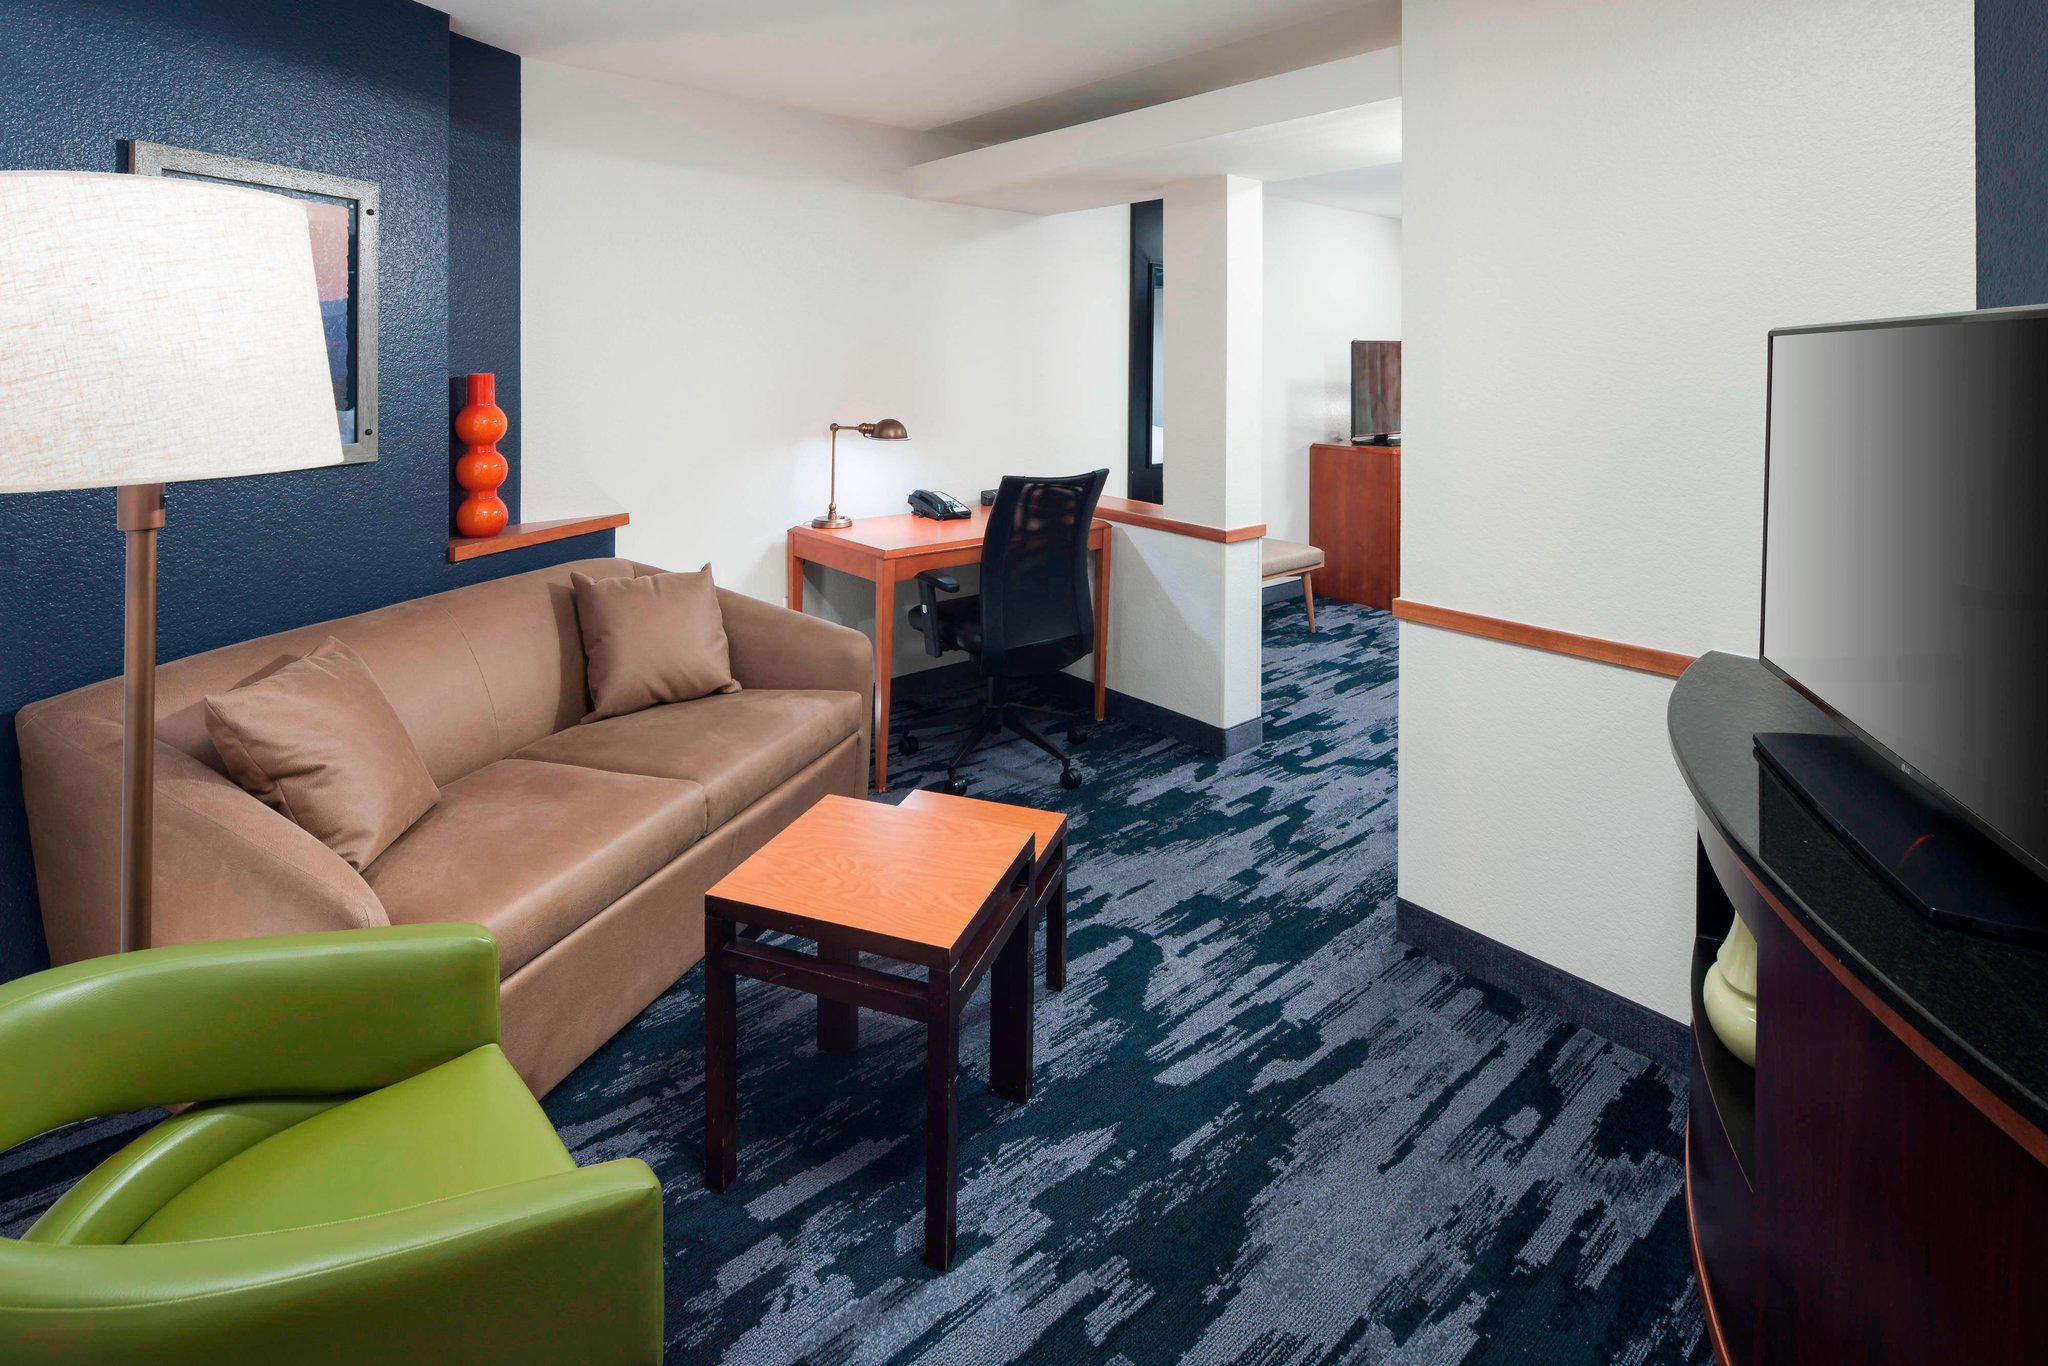 Fairfield Inn & Suites by Marriott Austin Parmer/Tech Ridge